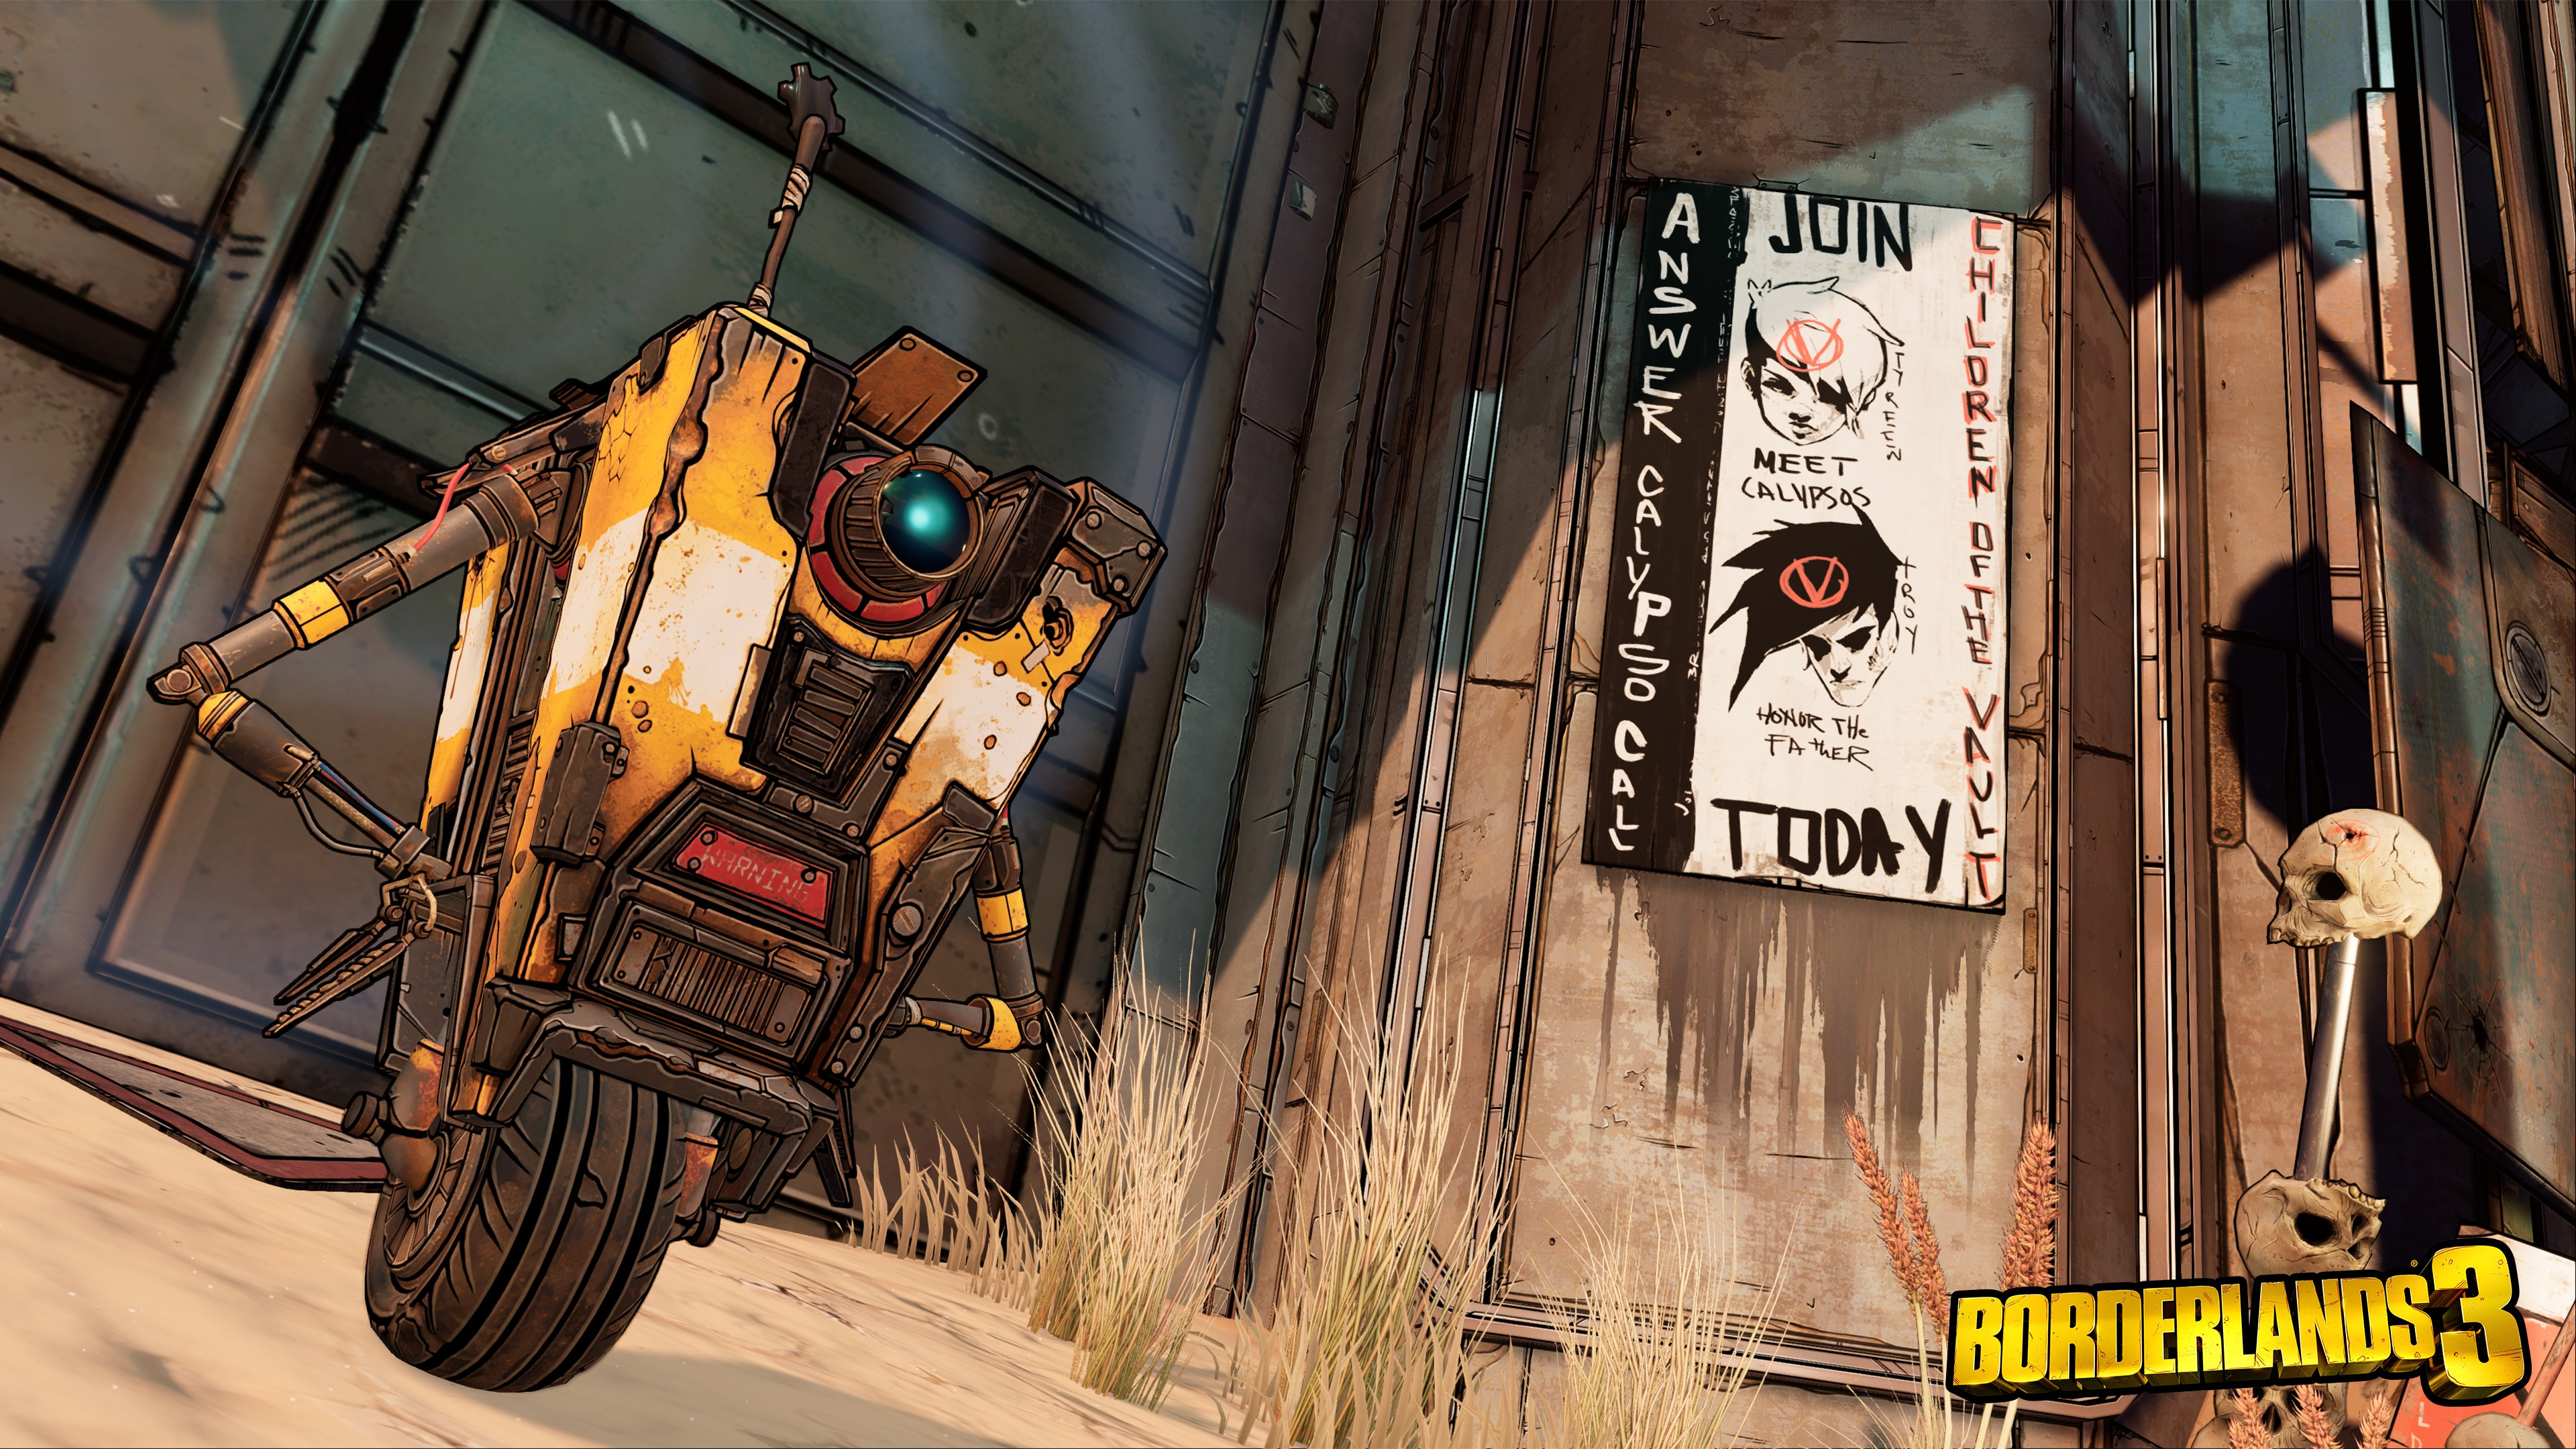 Check Out Some Great Looking 4K Screenshots For Borderlands 3